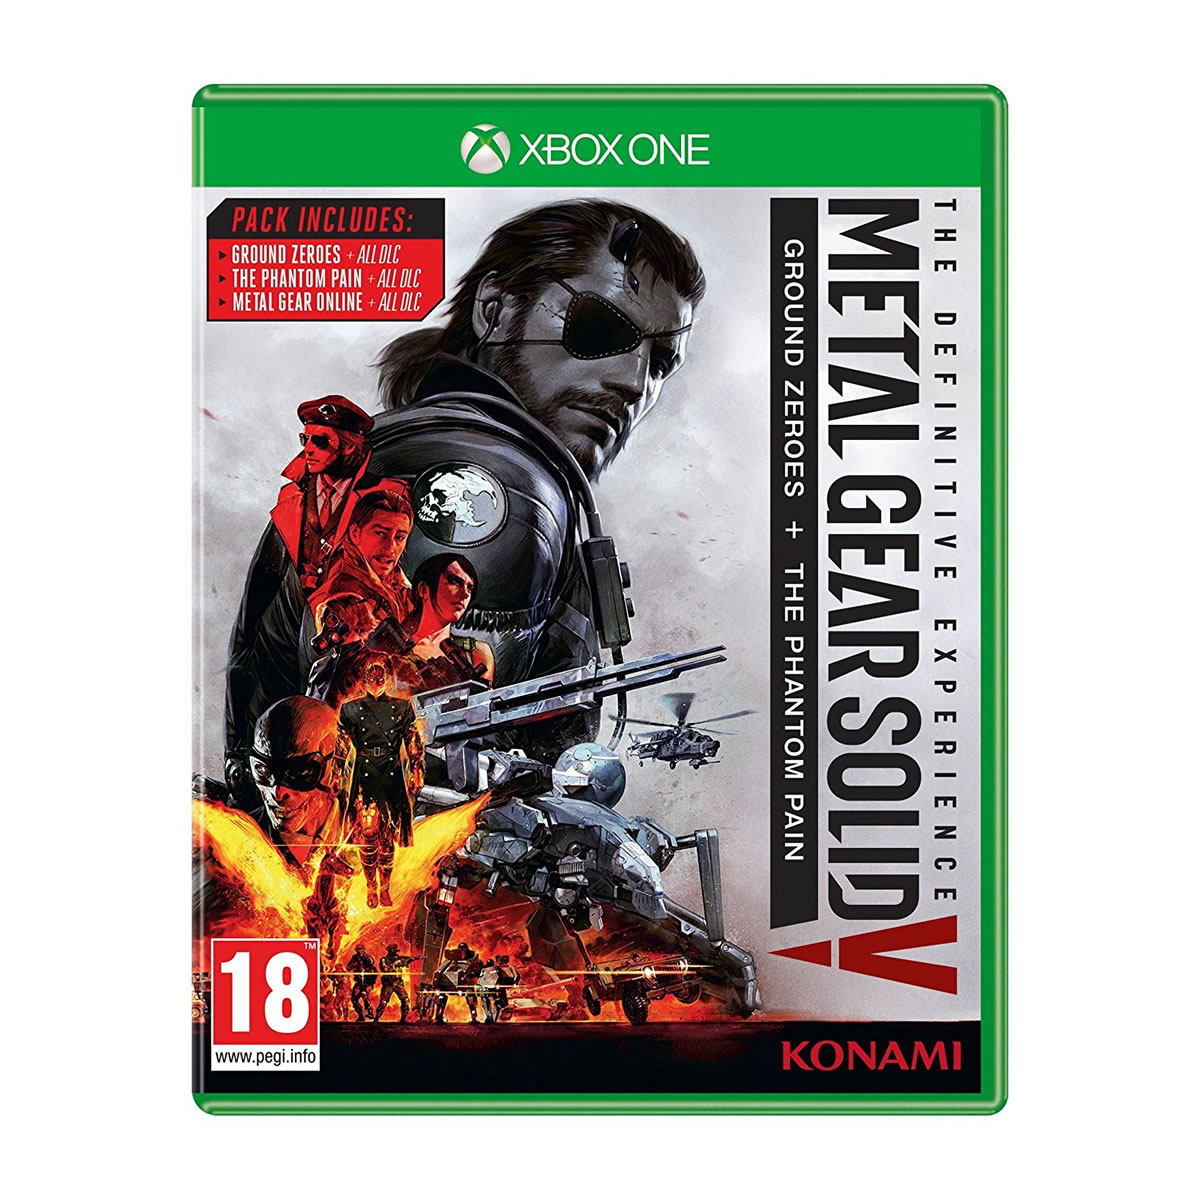 METAL GEAR SOLID V: DEFINITIVE EDITION (XBOX ONE)